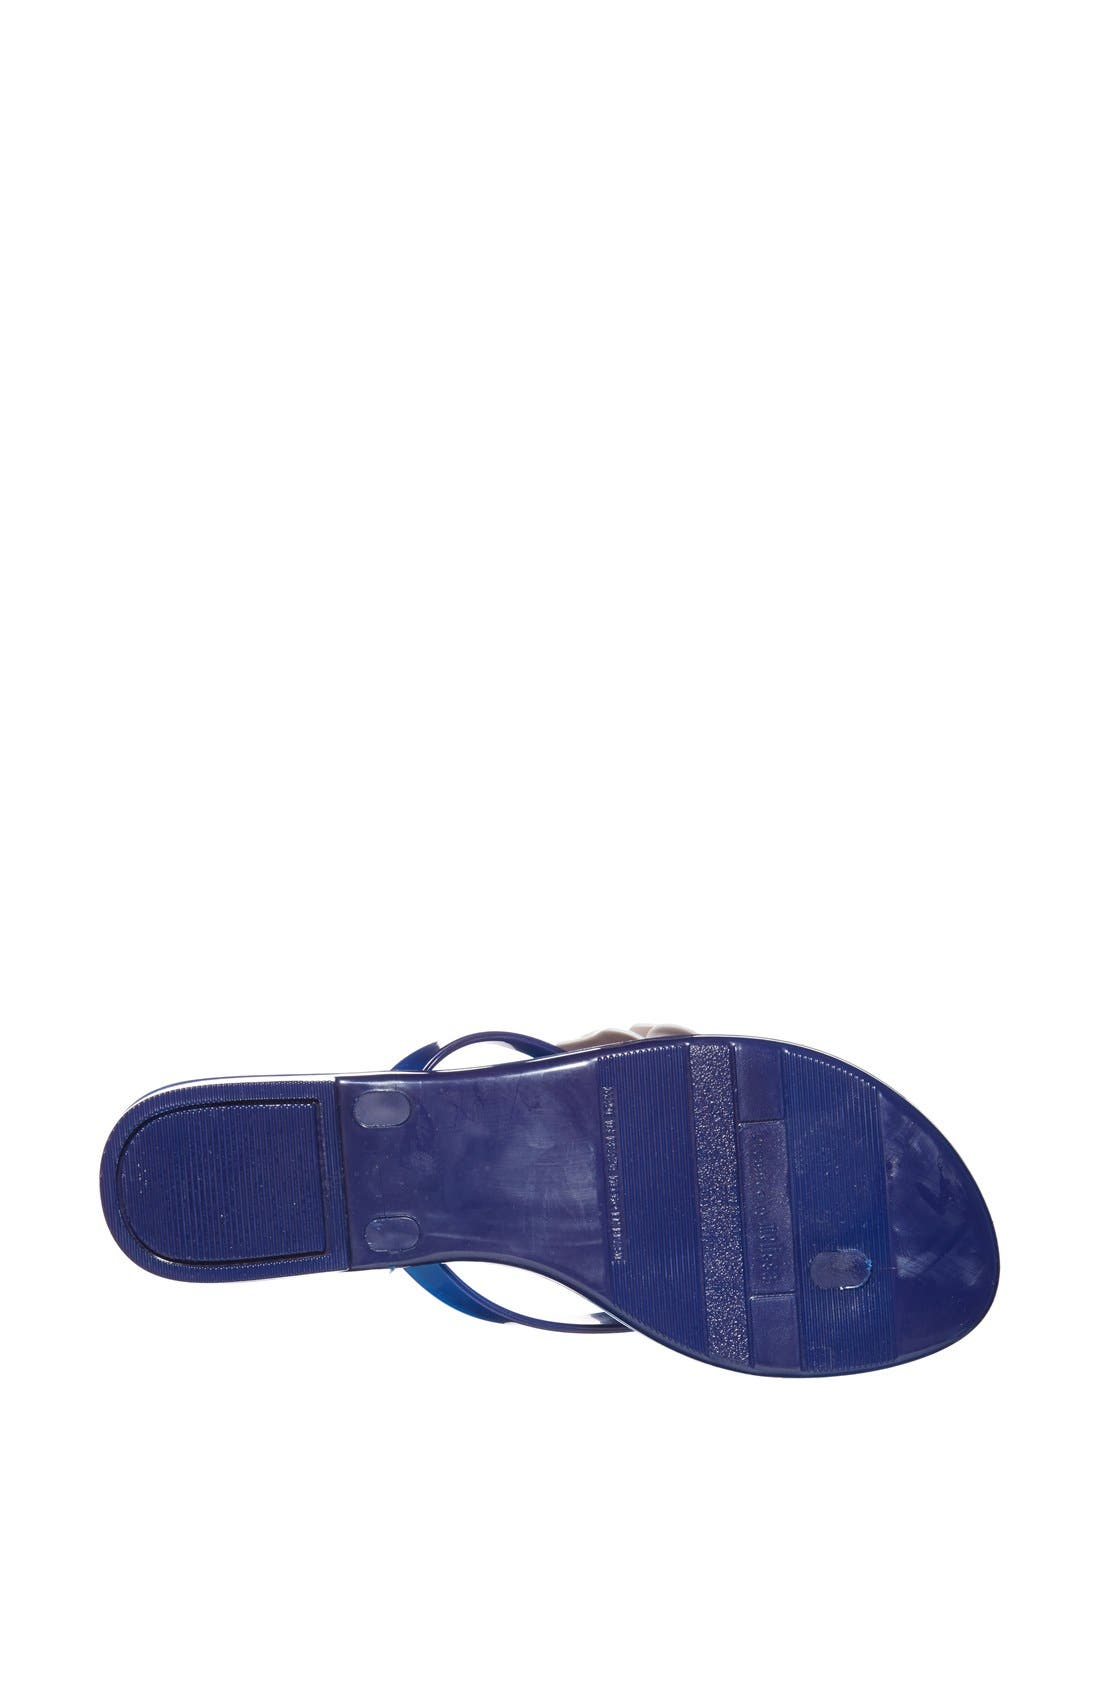 ,                             'Honey III' Flip Flop,                             Alternate thumbnail 6, color,                             401